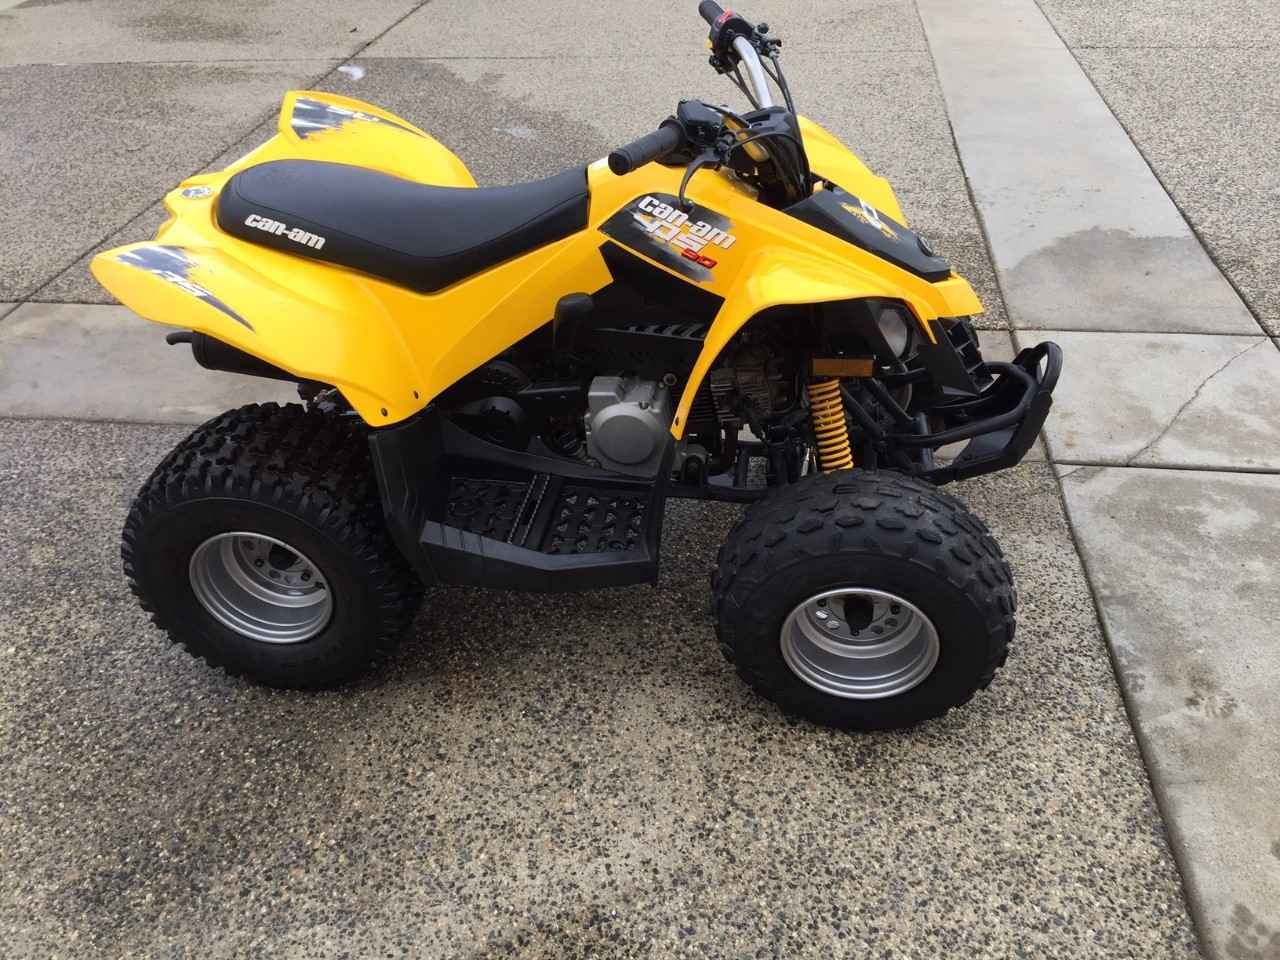 Used 2012 Can Am Ds 90 Atvs For Sale In California On Atv Trades